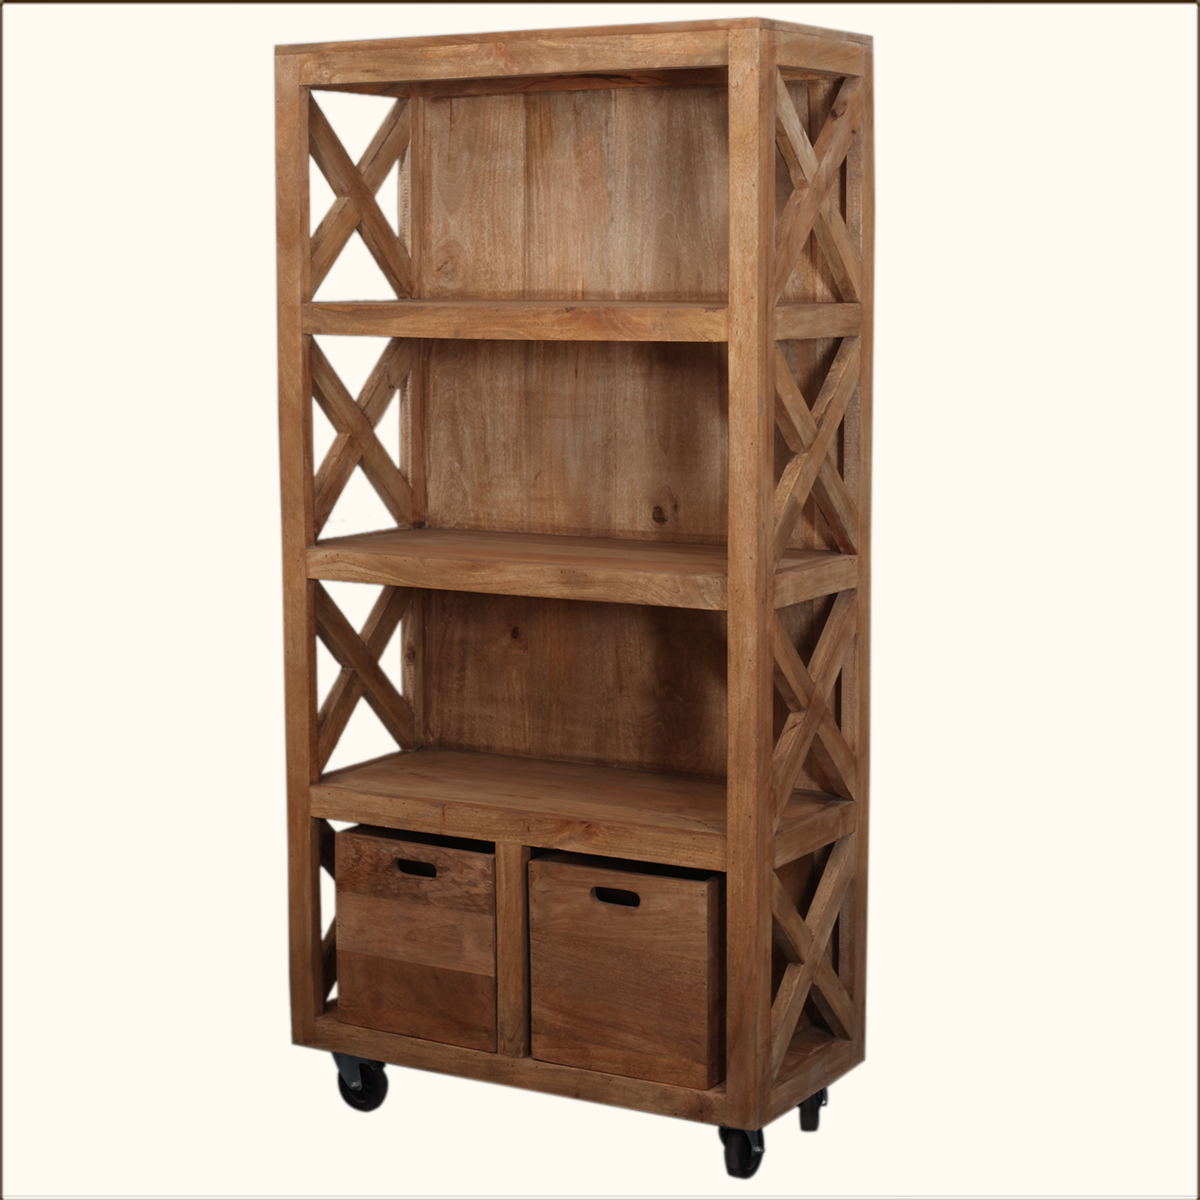 appalachian rustic mango wood rolling book case shelves w. Black Bedroom Furniture Sets. Home Design Ideas